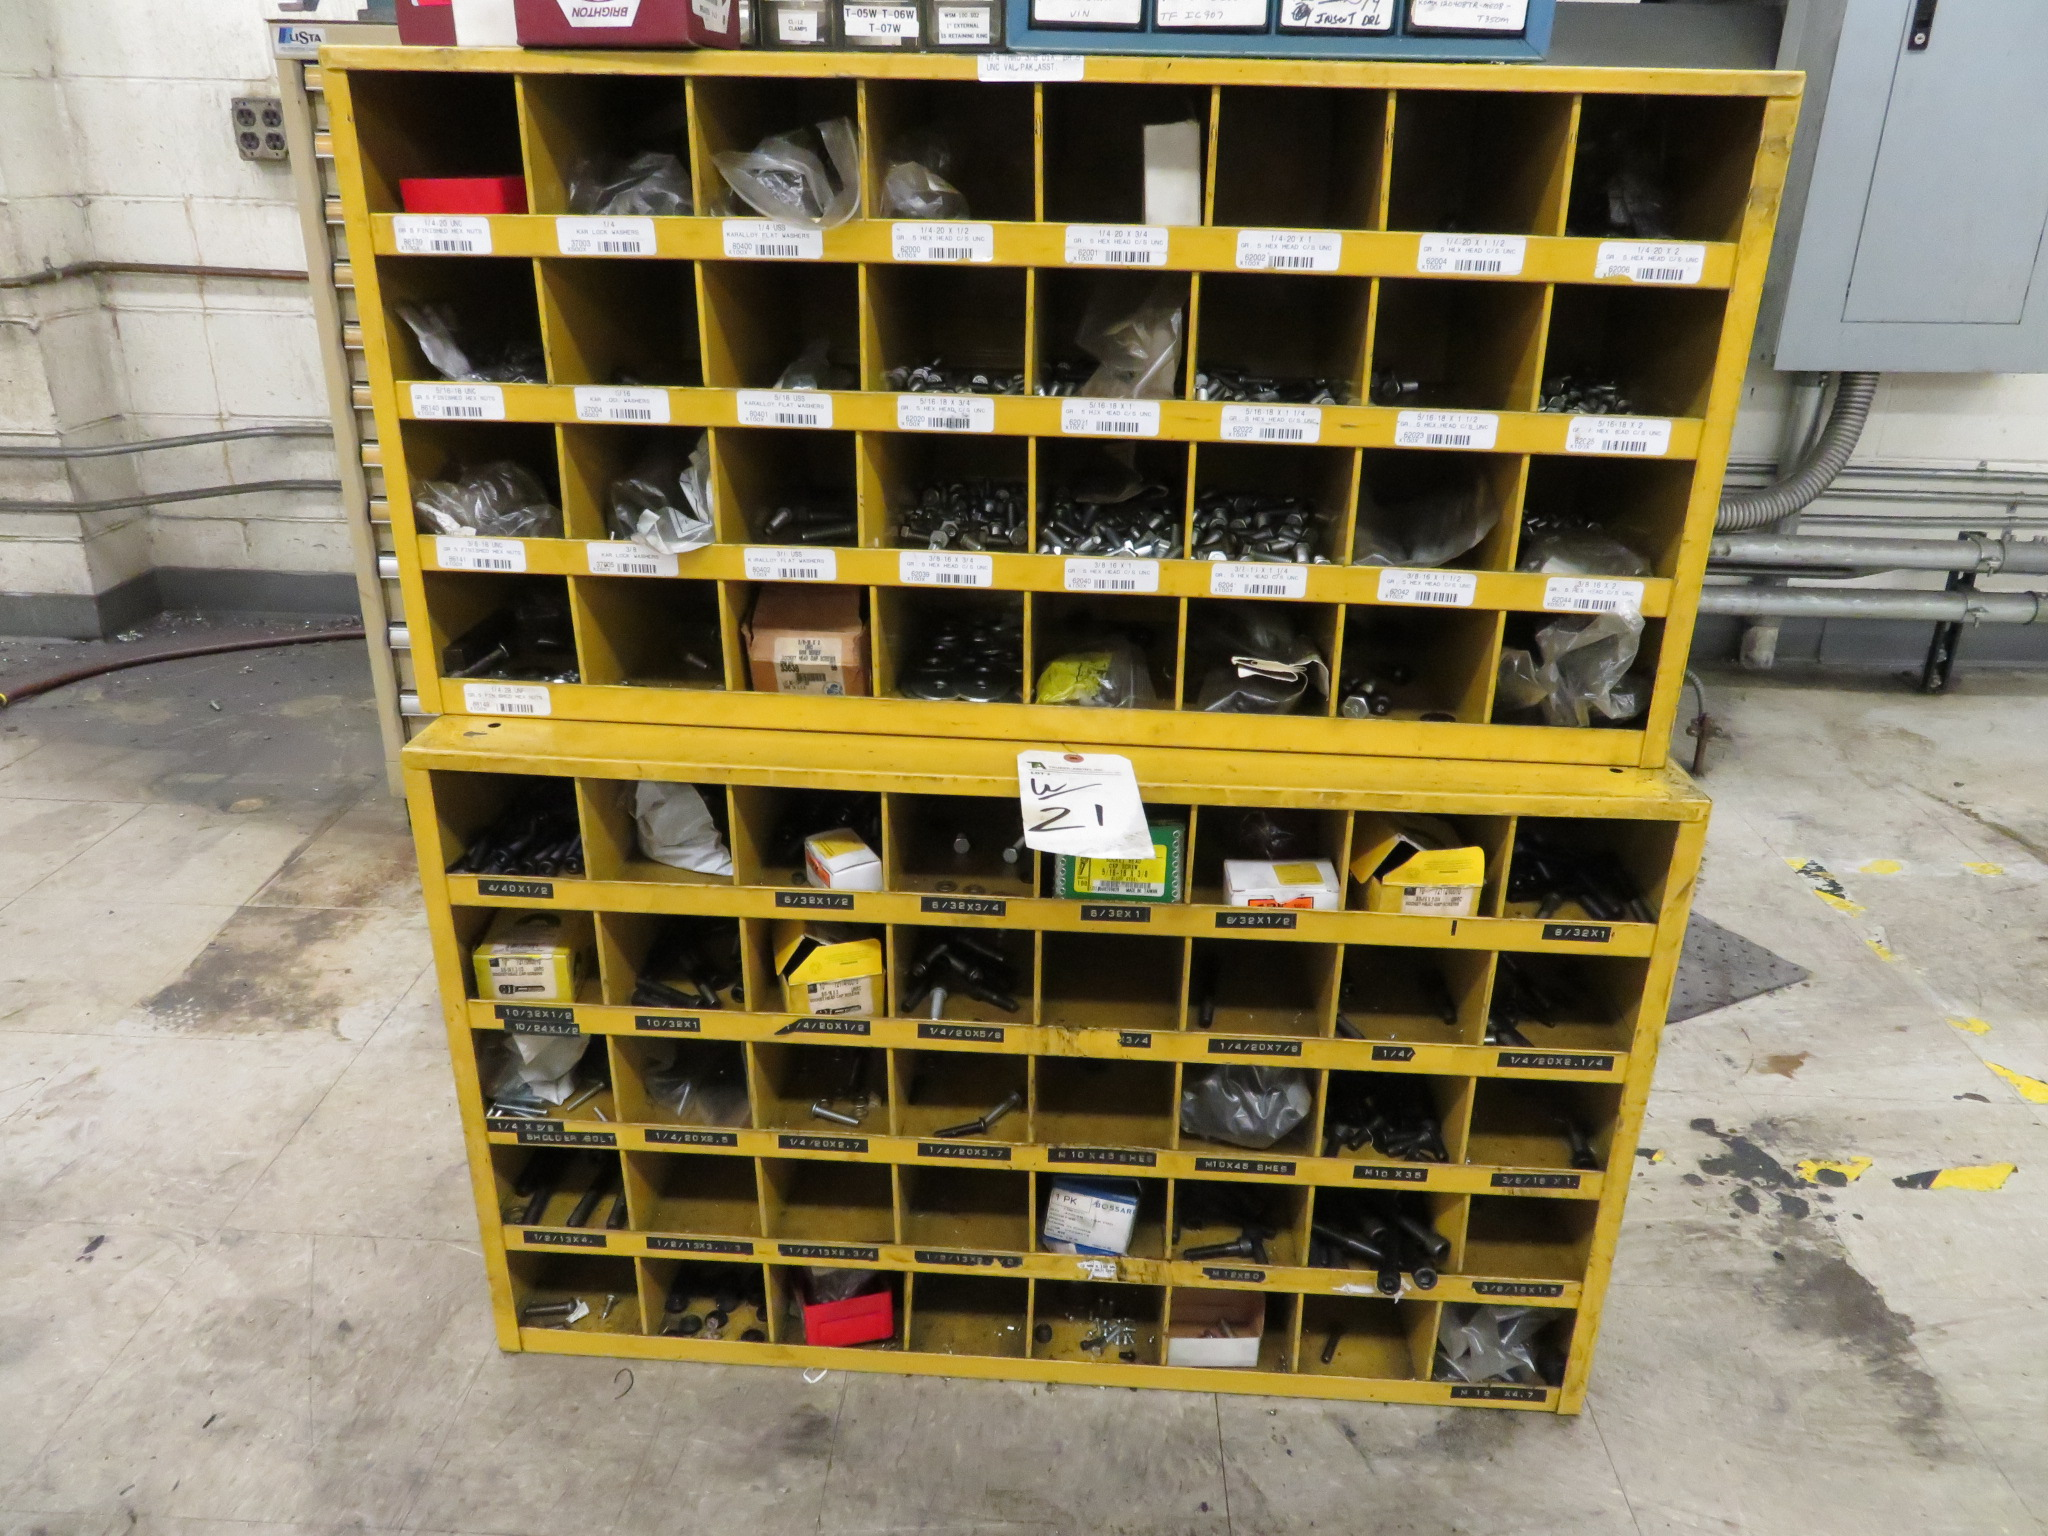 (Lot) Kar Products Parts and Cabinets - Image 2 of 2